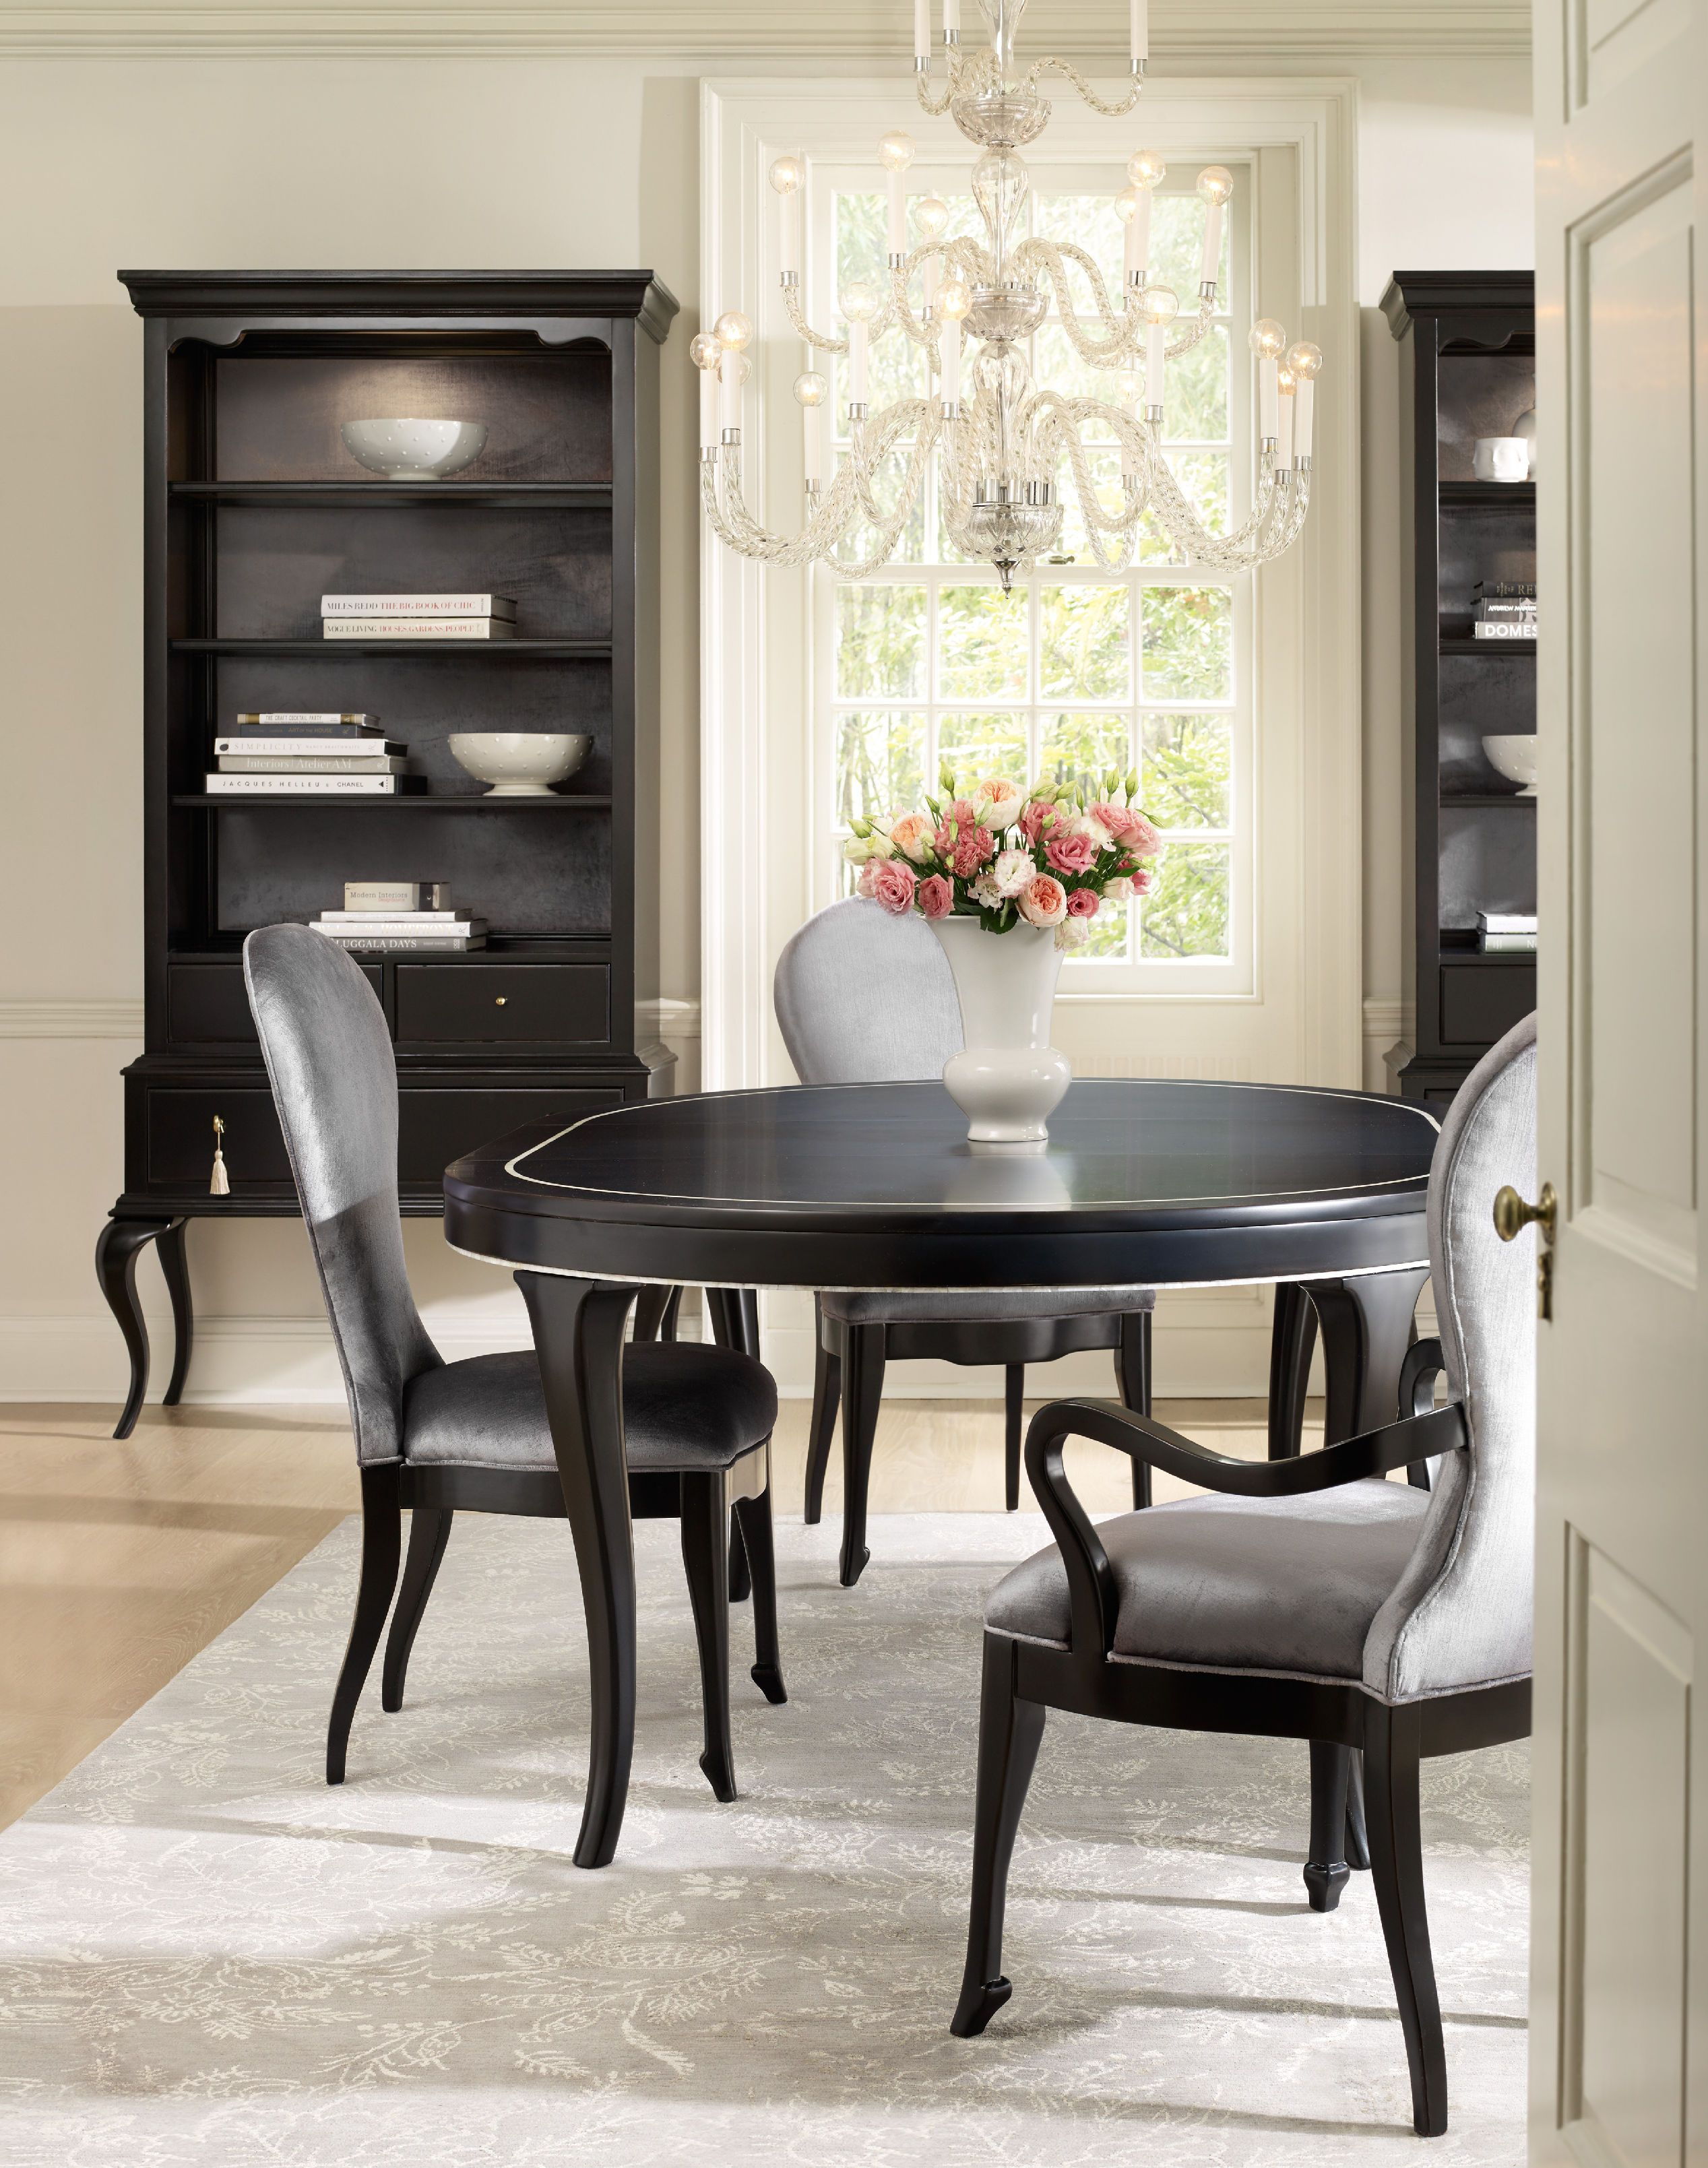 Cynthia Rowley For Furniture Dining Room Bloom Round